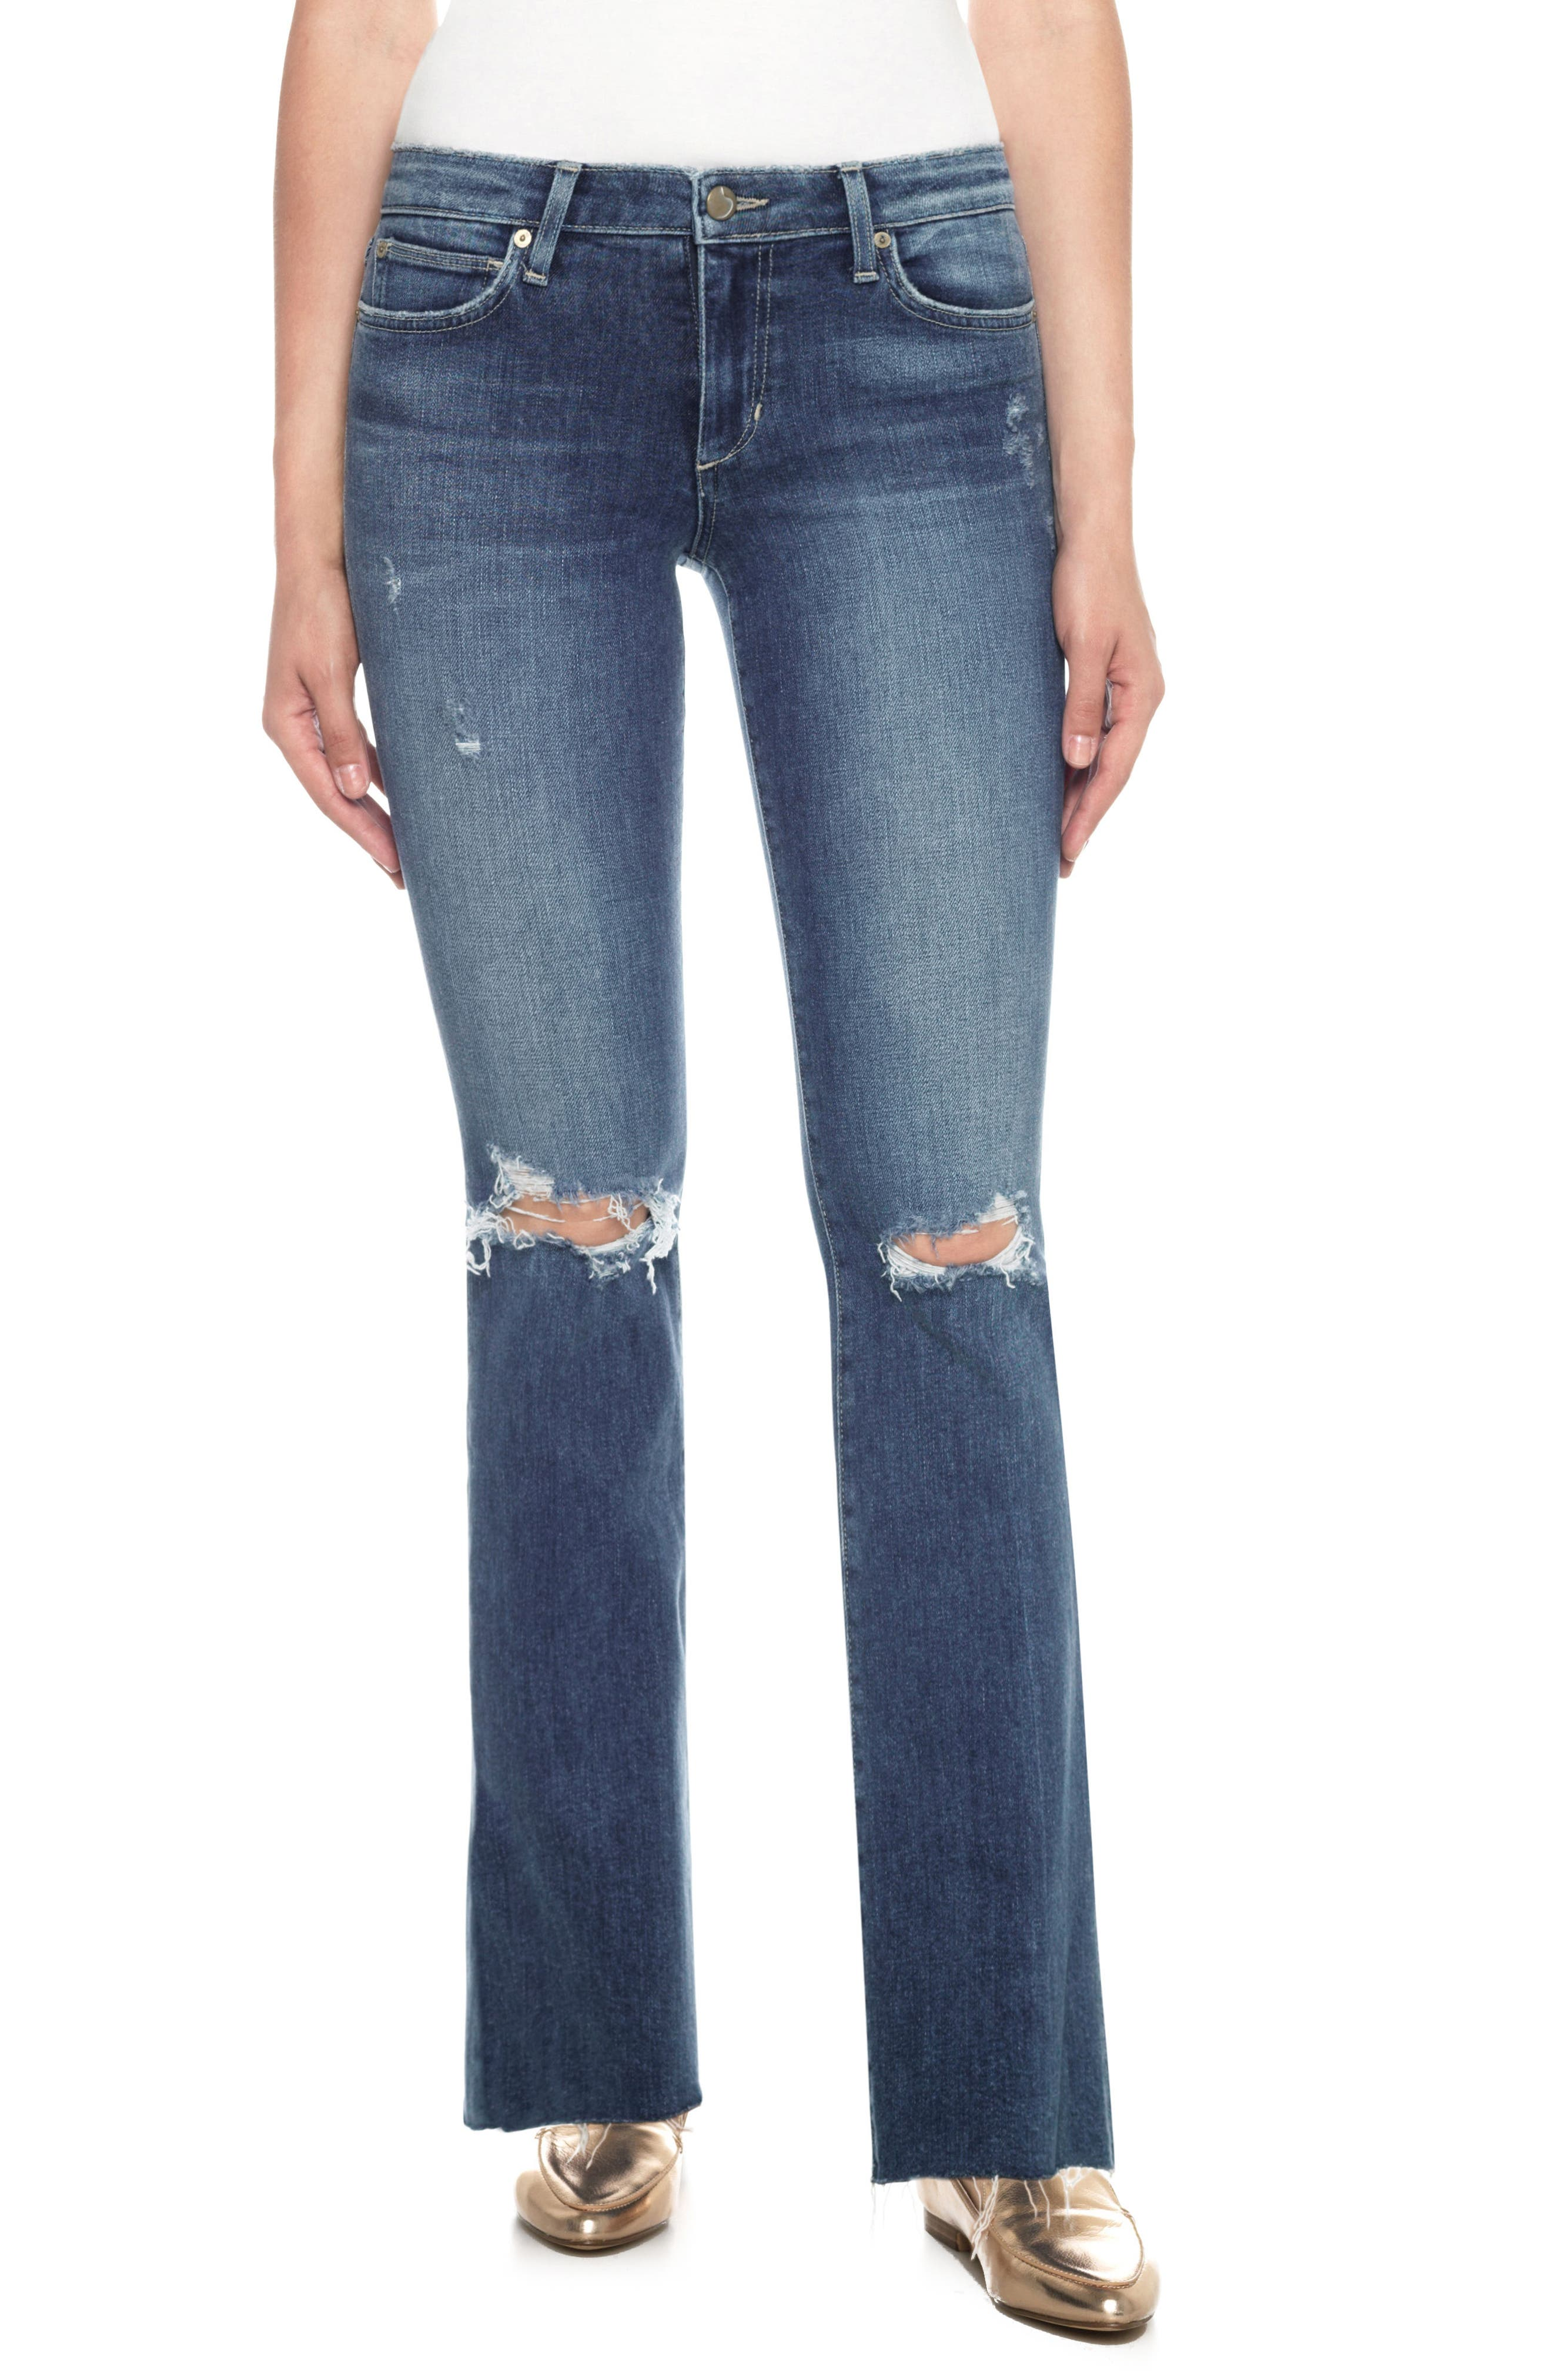 Provocateur Distressed Bootcut Jeans,                         Main,                         color, Kinkade